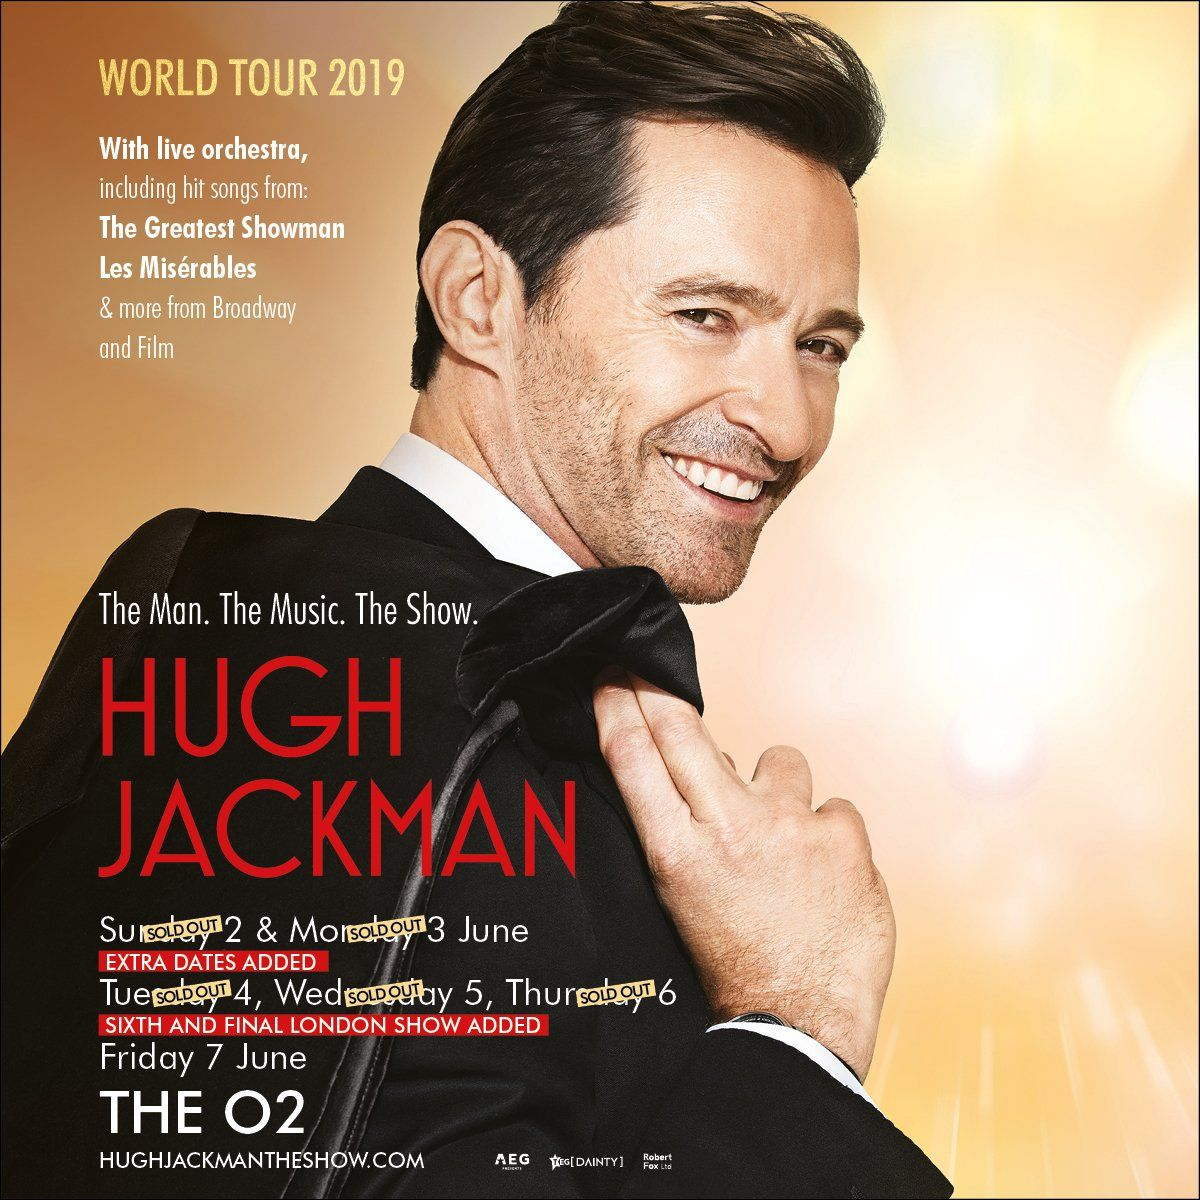 On-sale now. Get your tickets to the 6th date of @RealHughJackman live at The O2. https://t.co/6JuA7YvROI